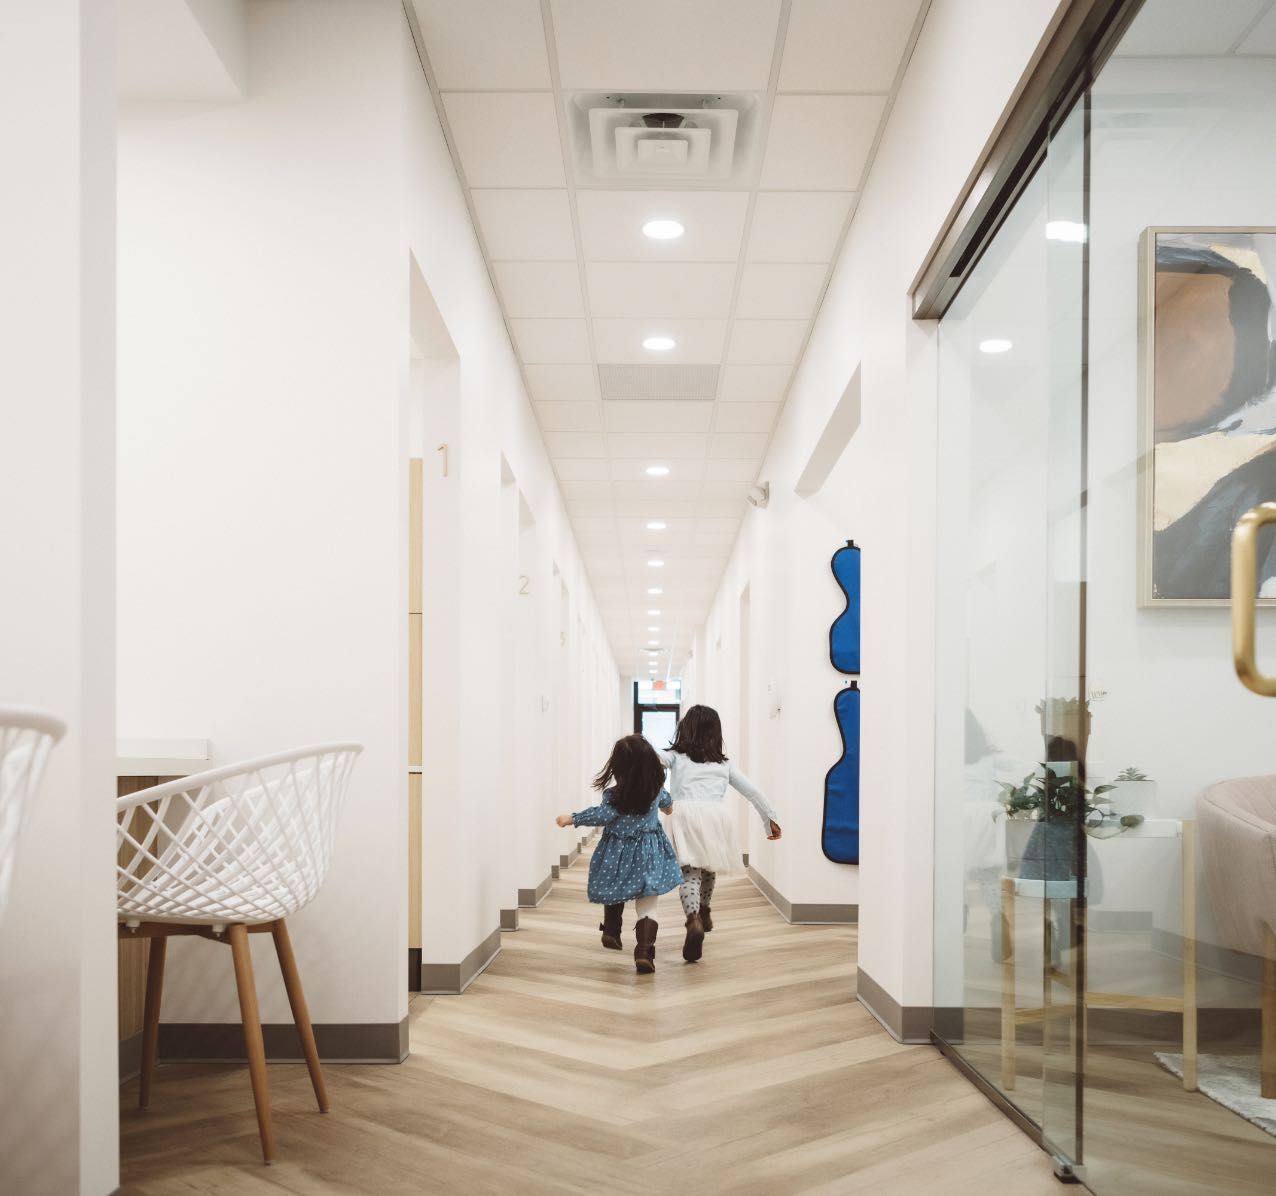 Photo of two young patients walking down a hallway together